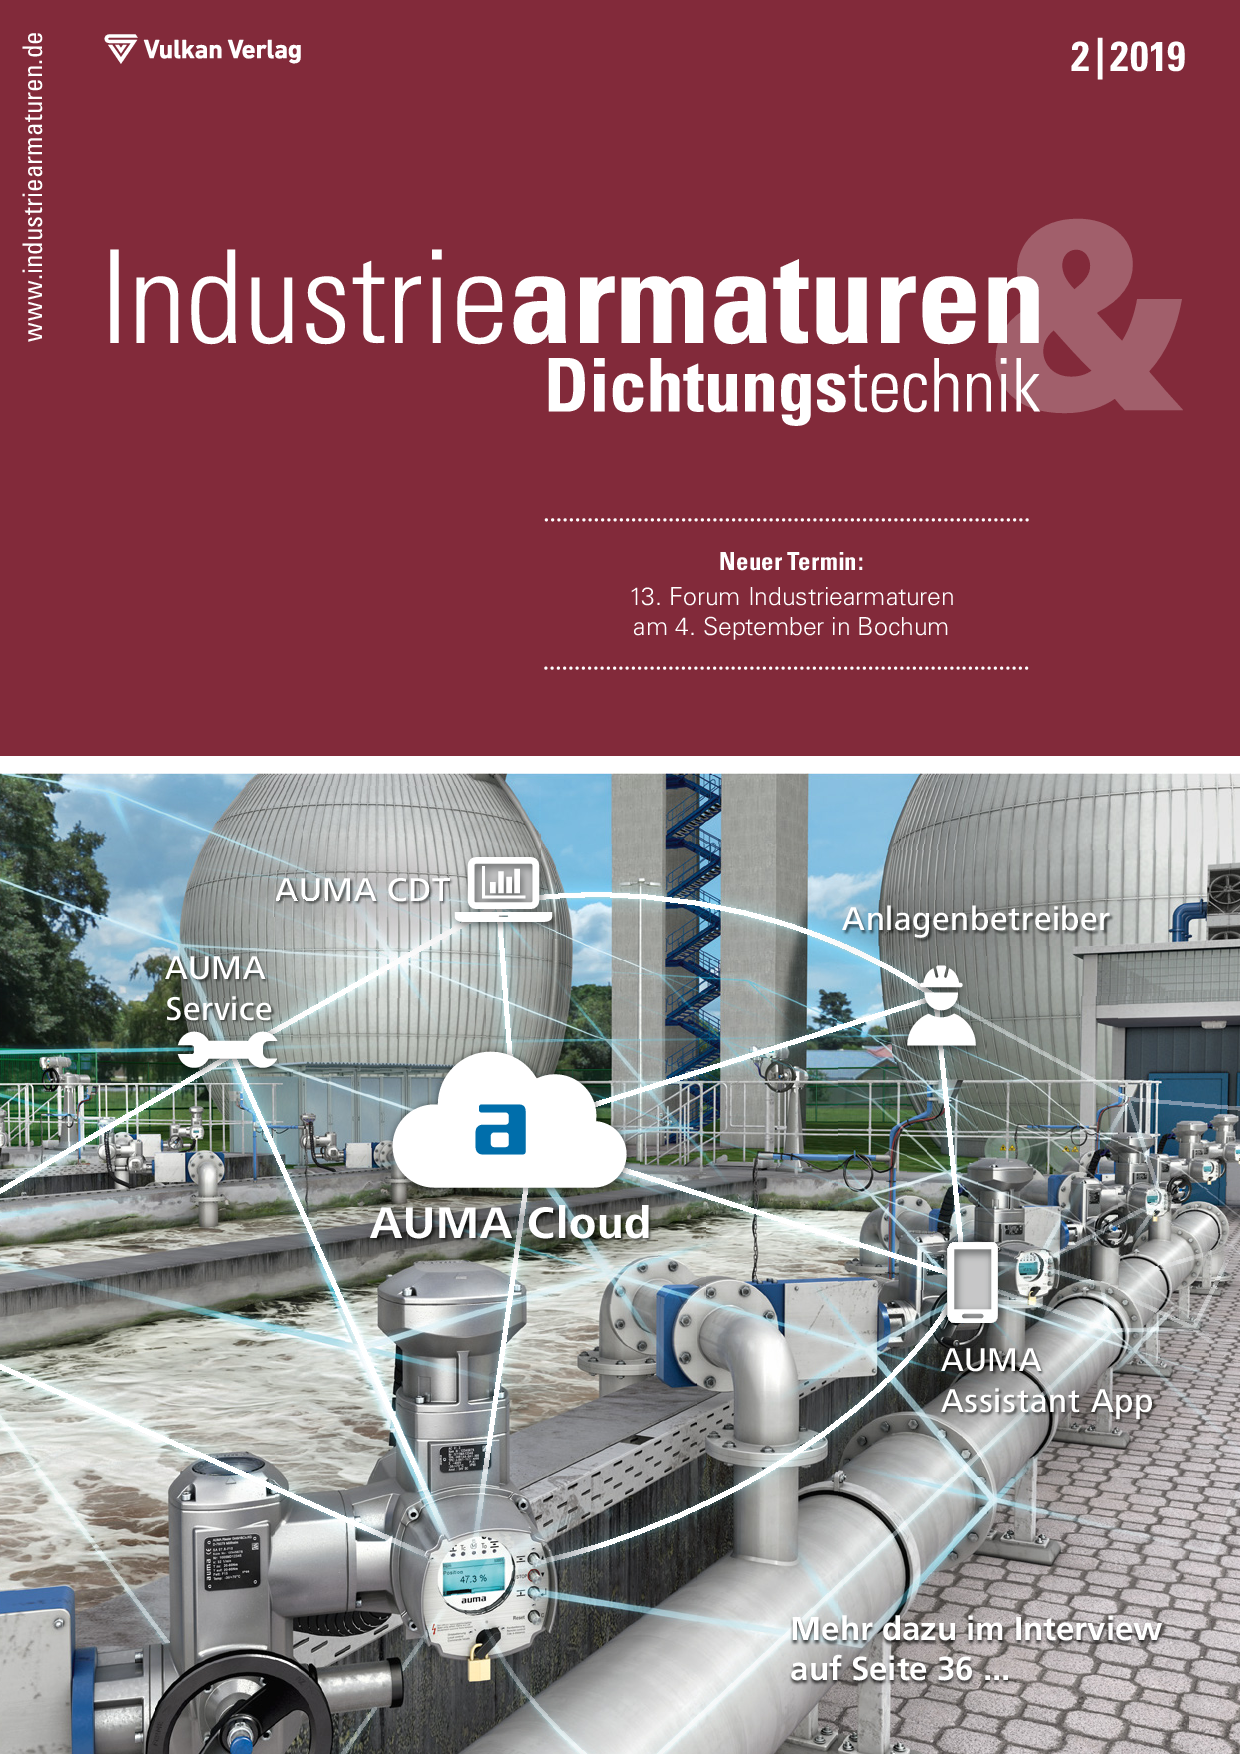 Industriearmaturen – 02 2019